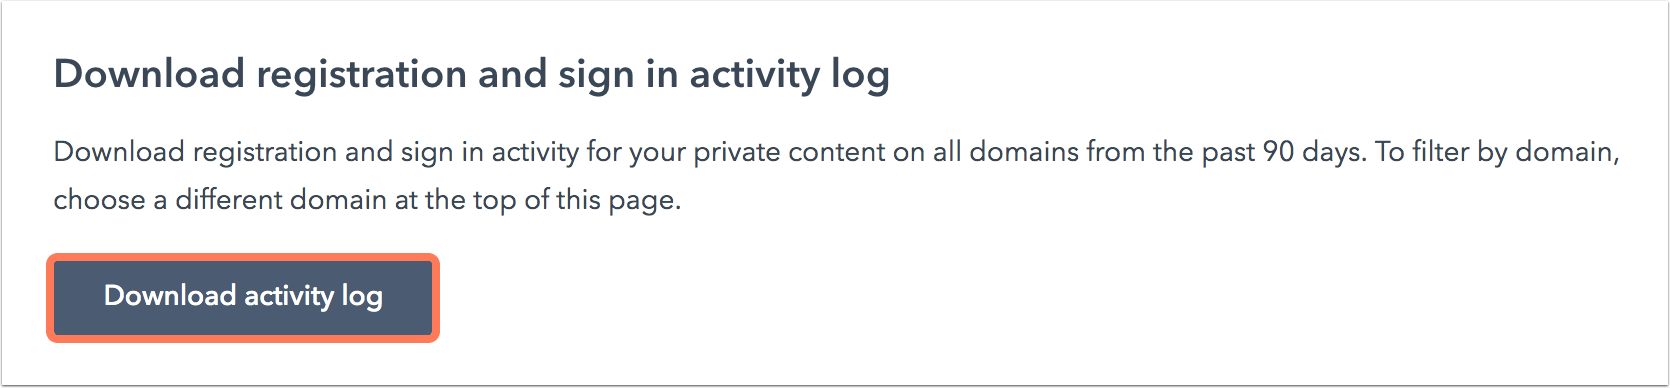 export-private-content-activity-log